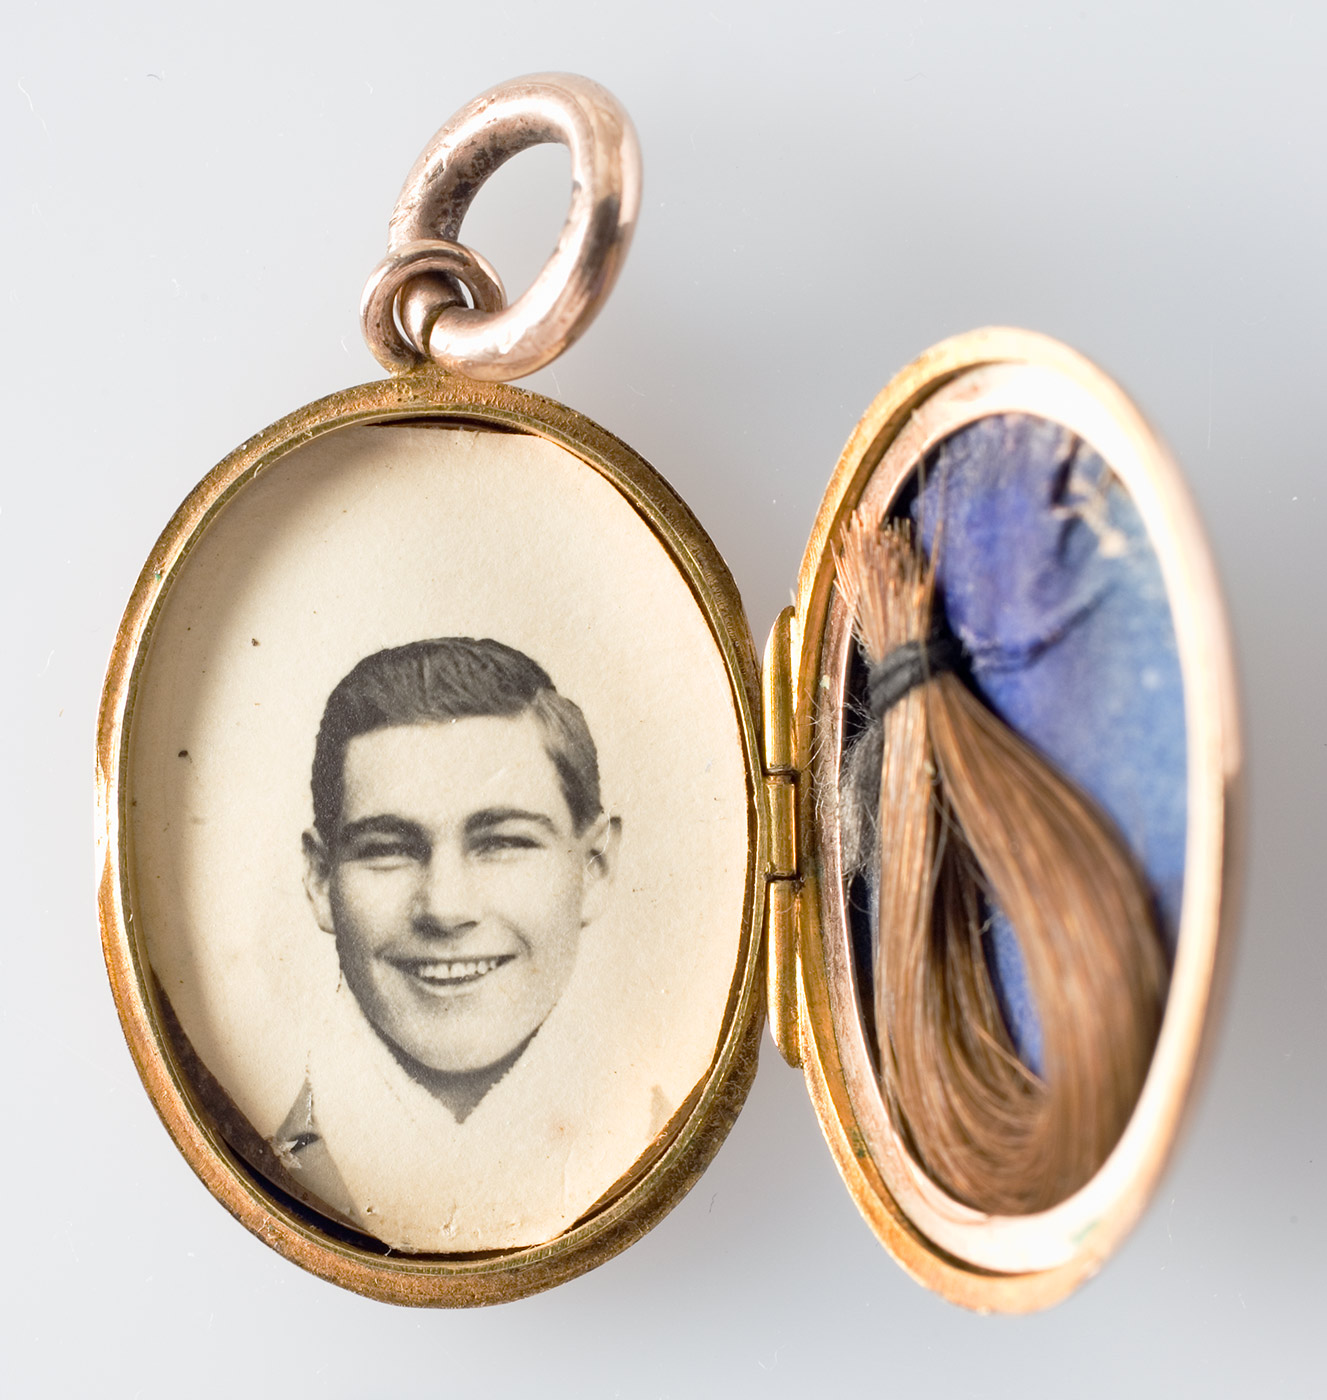 Images of the mourning locket, open and revealing a photo of Les Darcy (on left) and a lock of his hair on a blue background (on right). - click to view larger image